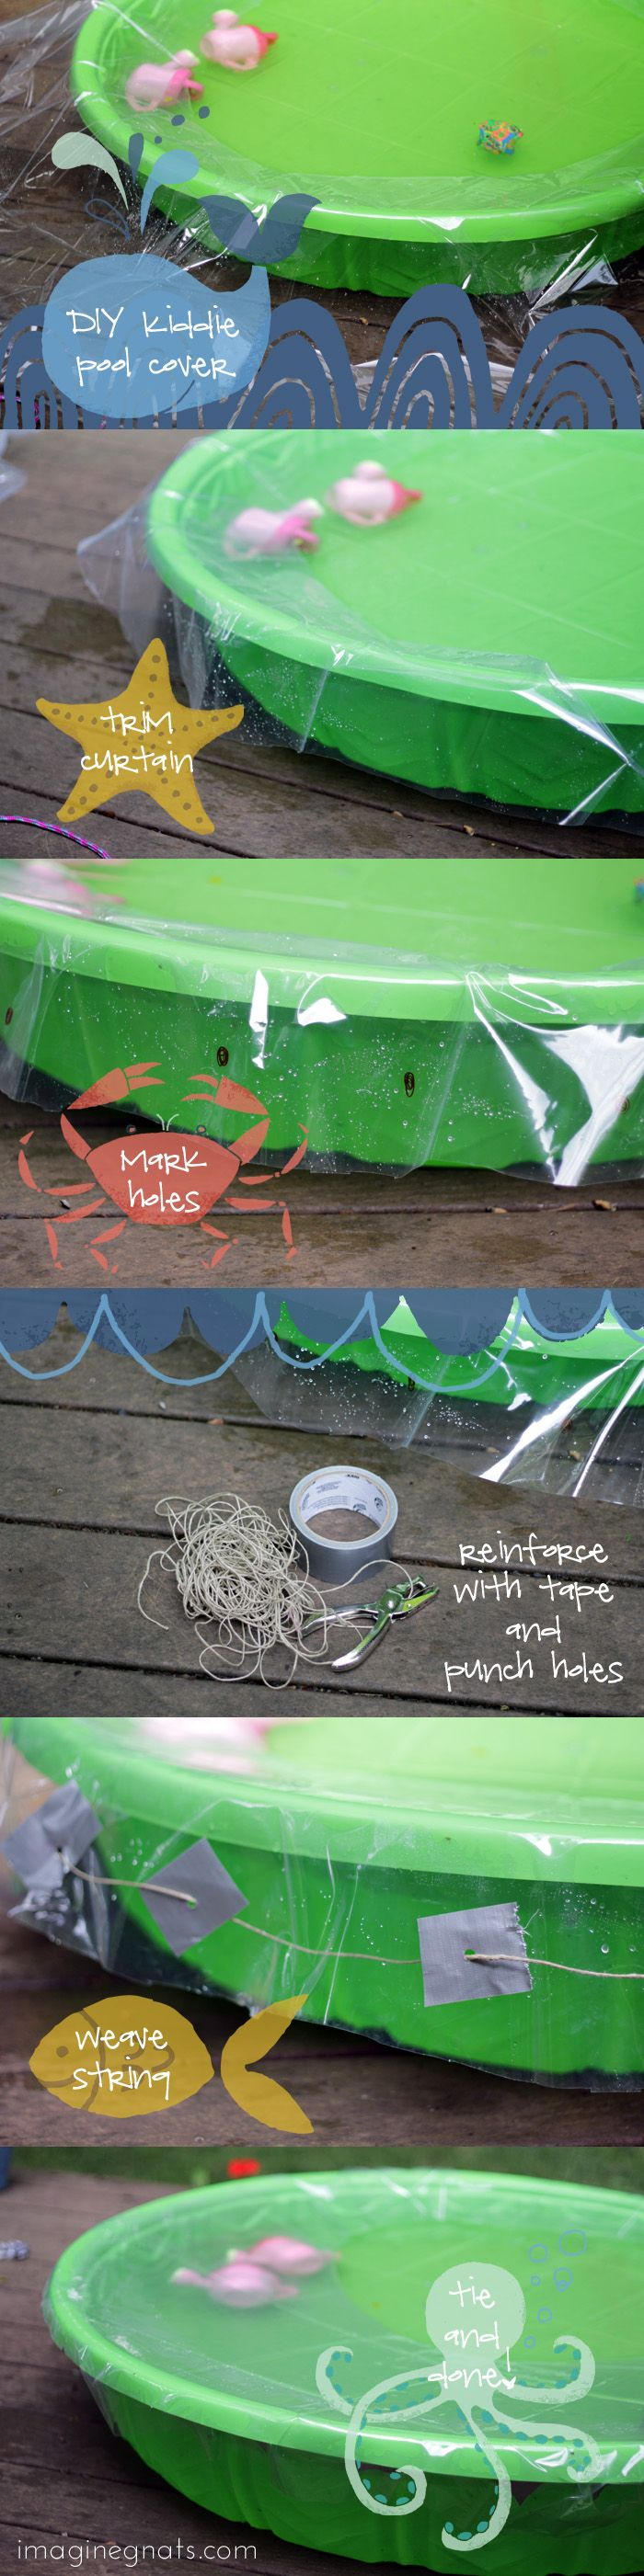 DIY: kiddie pool cover || imagine gnats